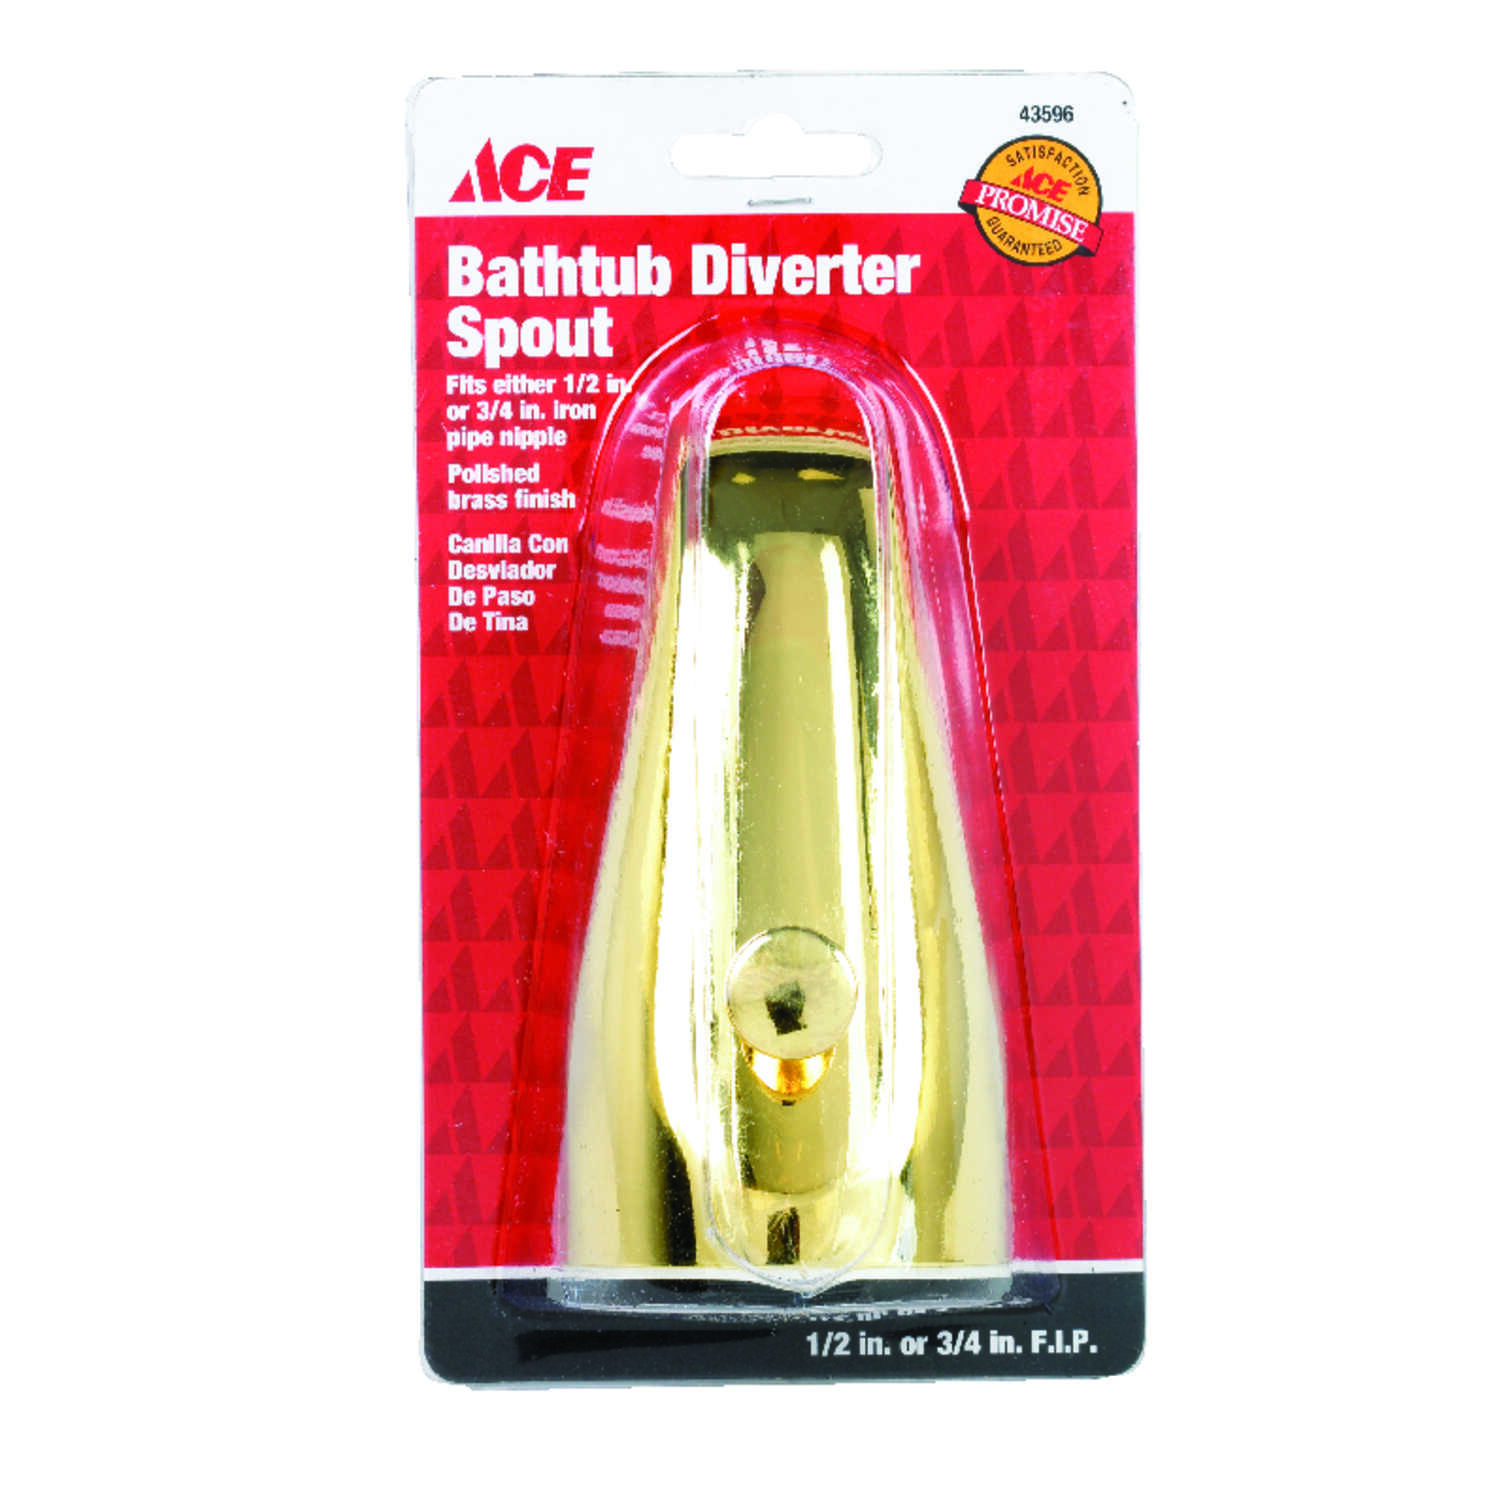 Ace  Bathtub Diverter Spout  n/a  Polished Brass Finish Metal Material